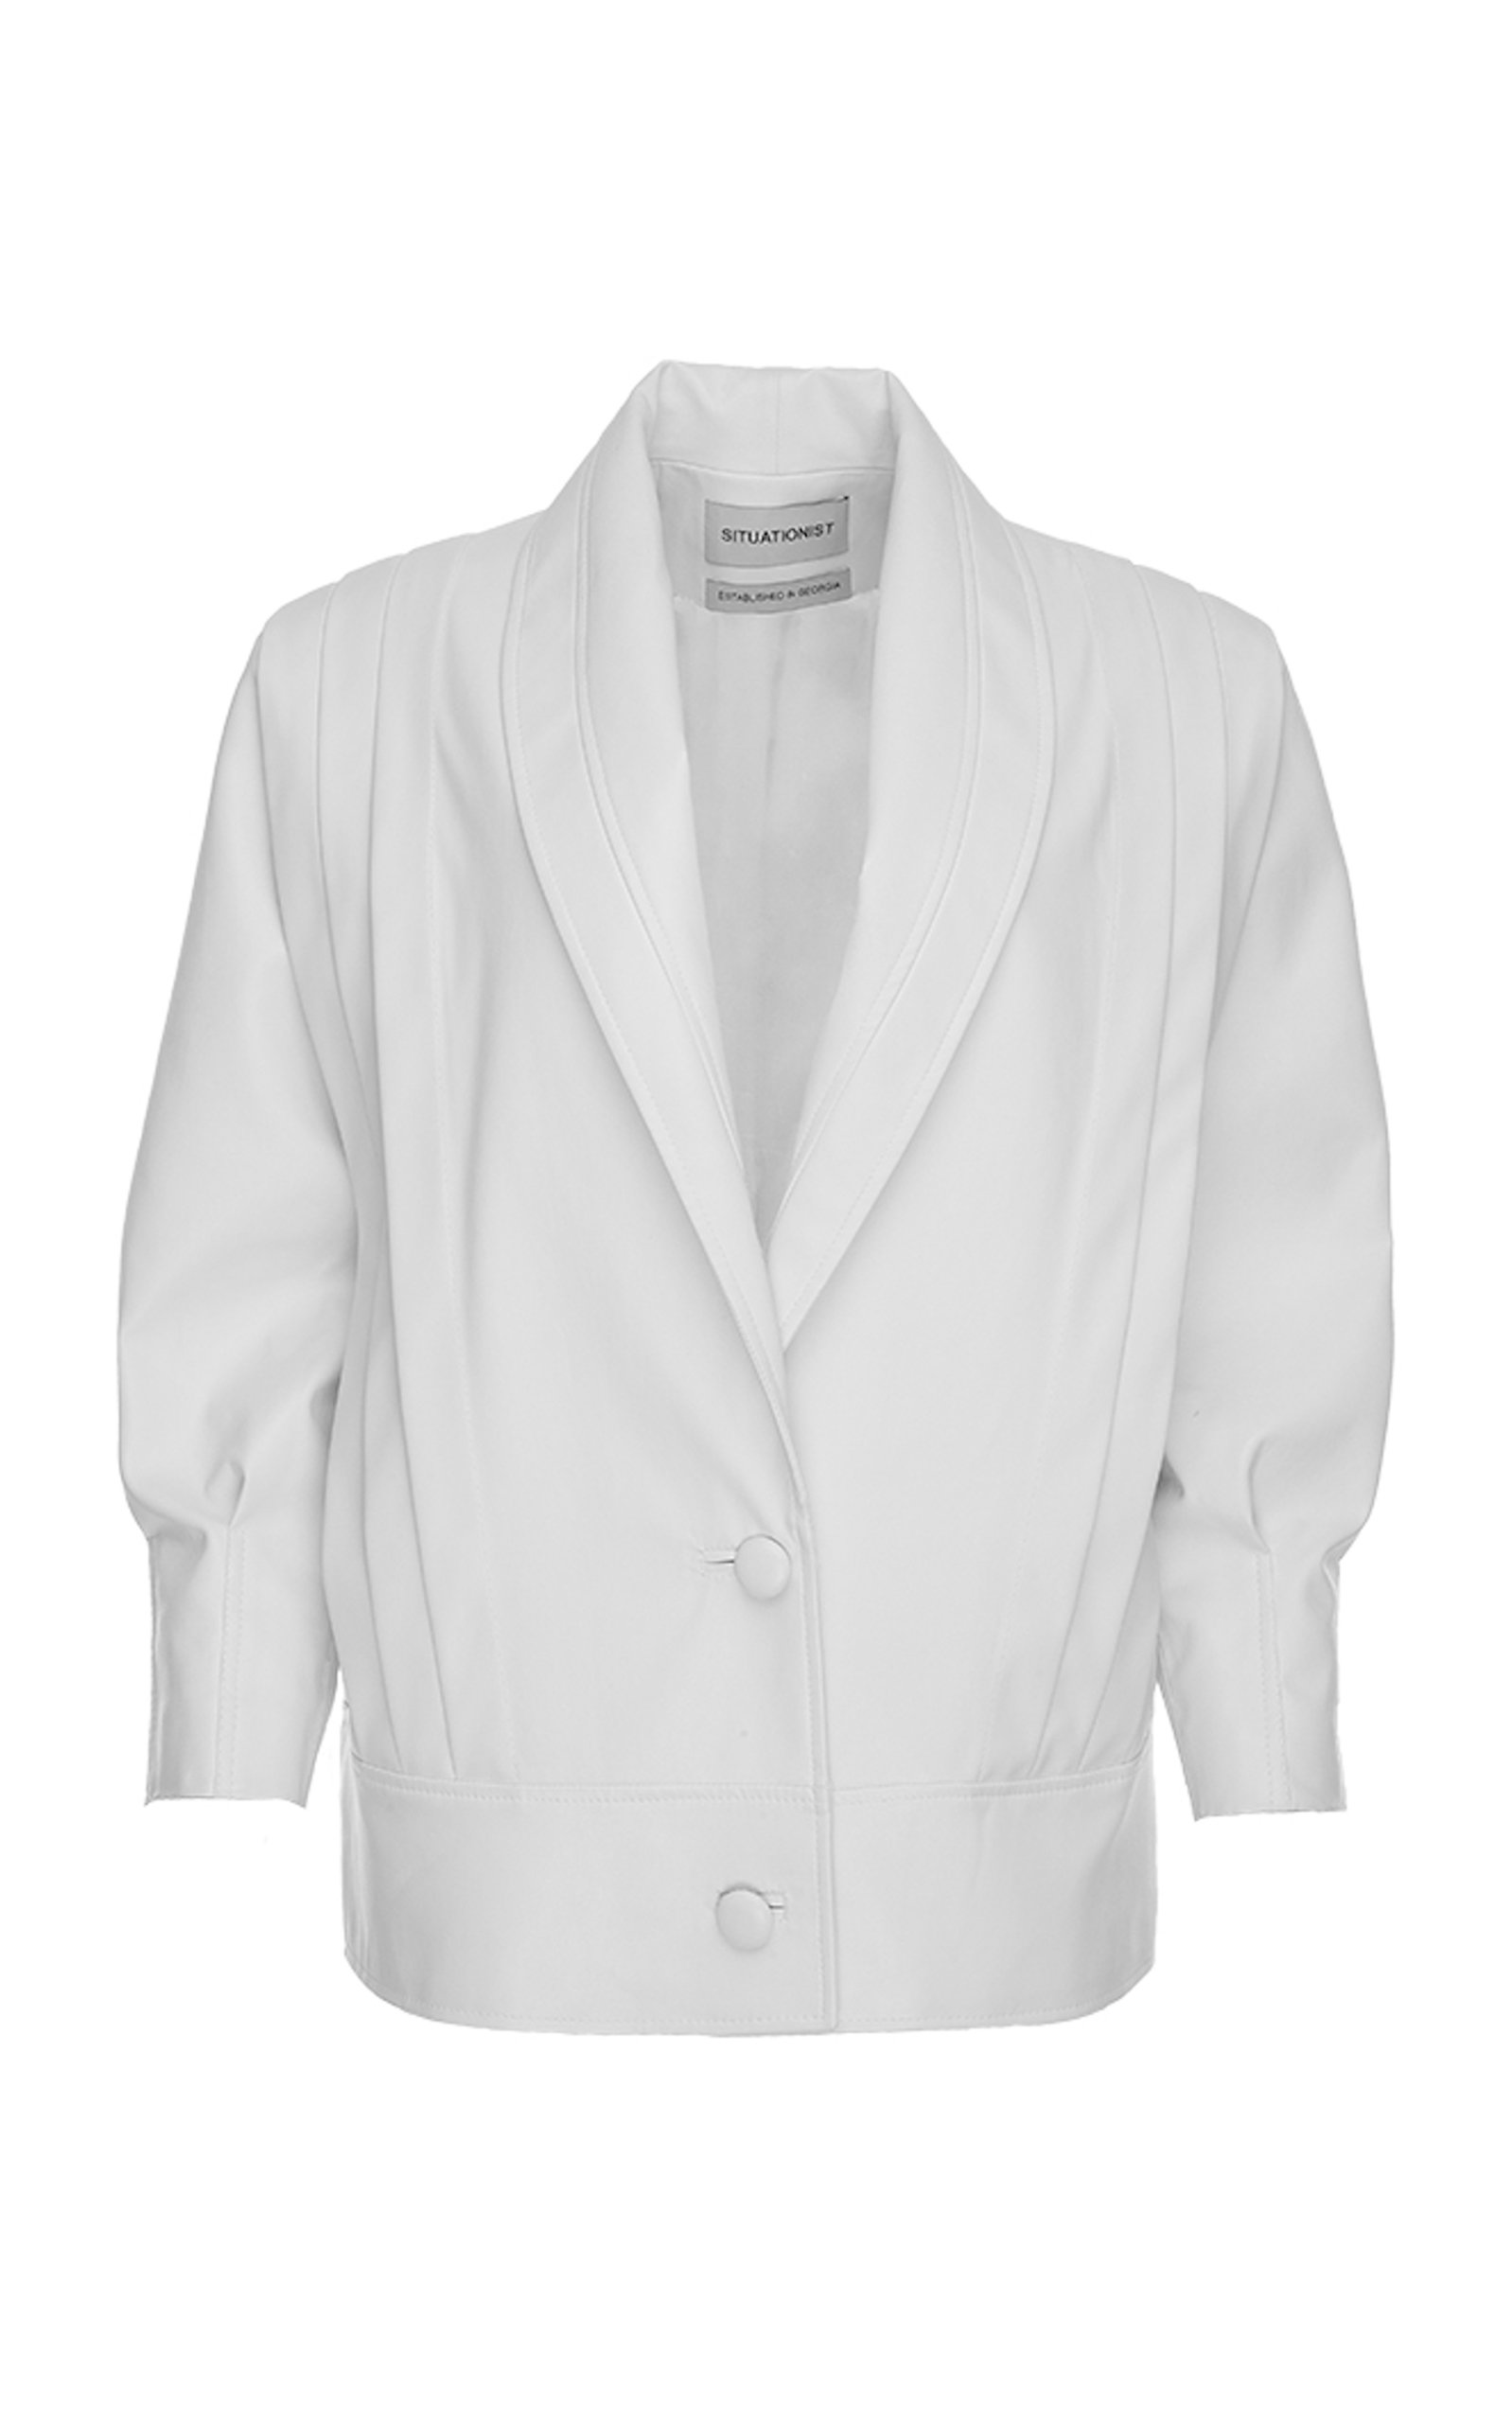 SITUATIONIST Pleated Leather Jacket in White